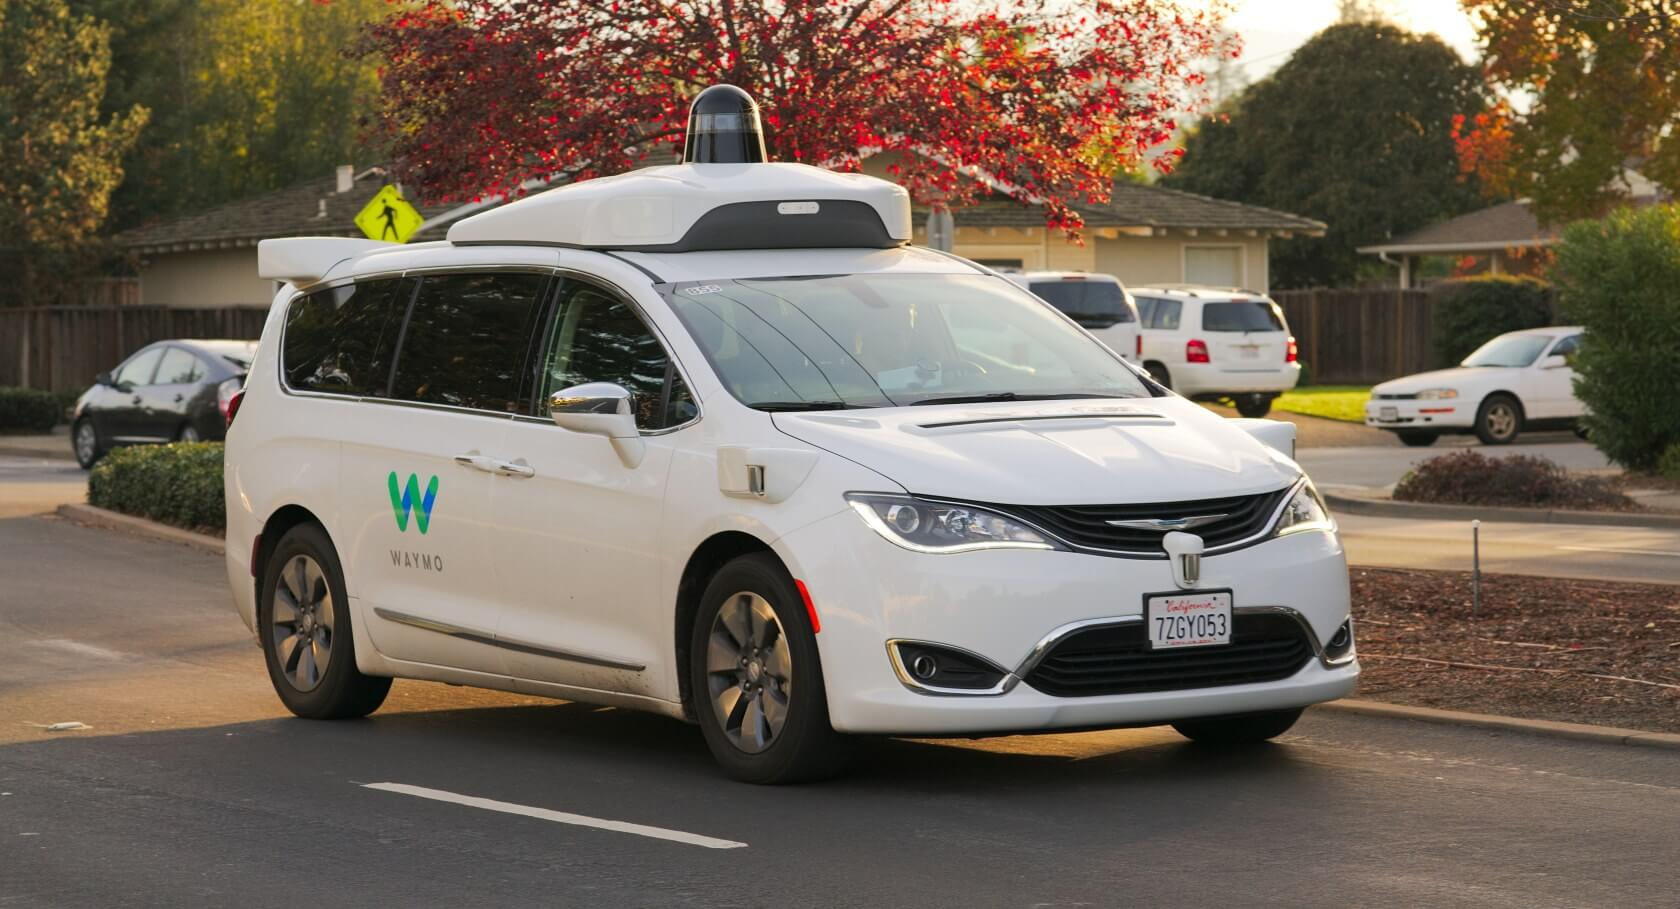 Congress asks the self-driving car industry for feedback on upcoming legislation